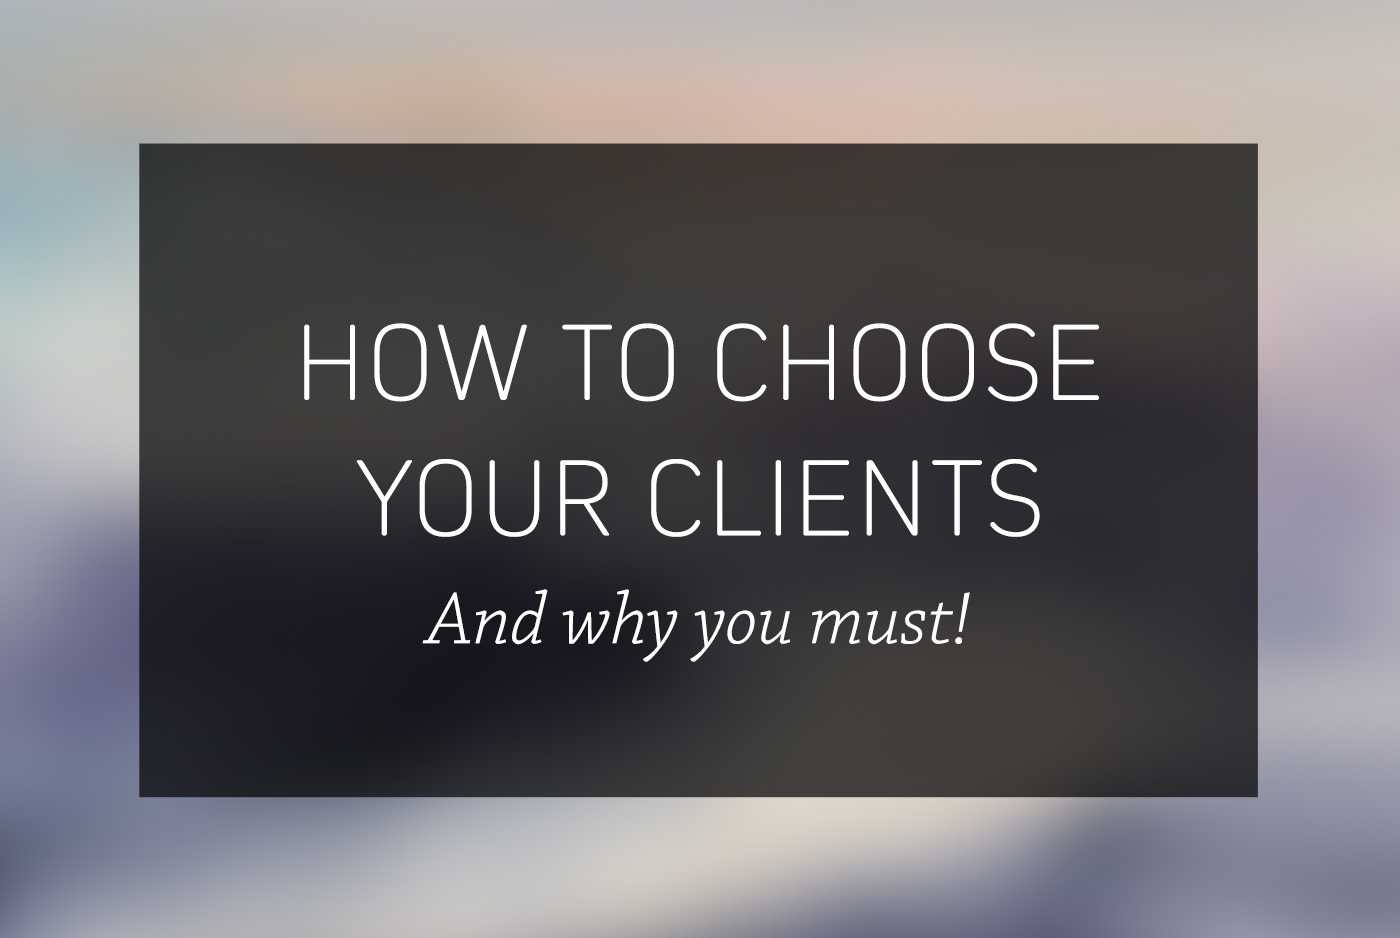 How to choose your clients wisely (and why you must!)